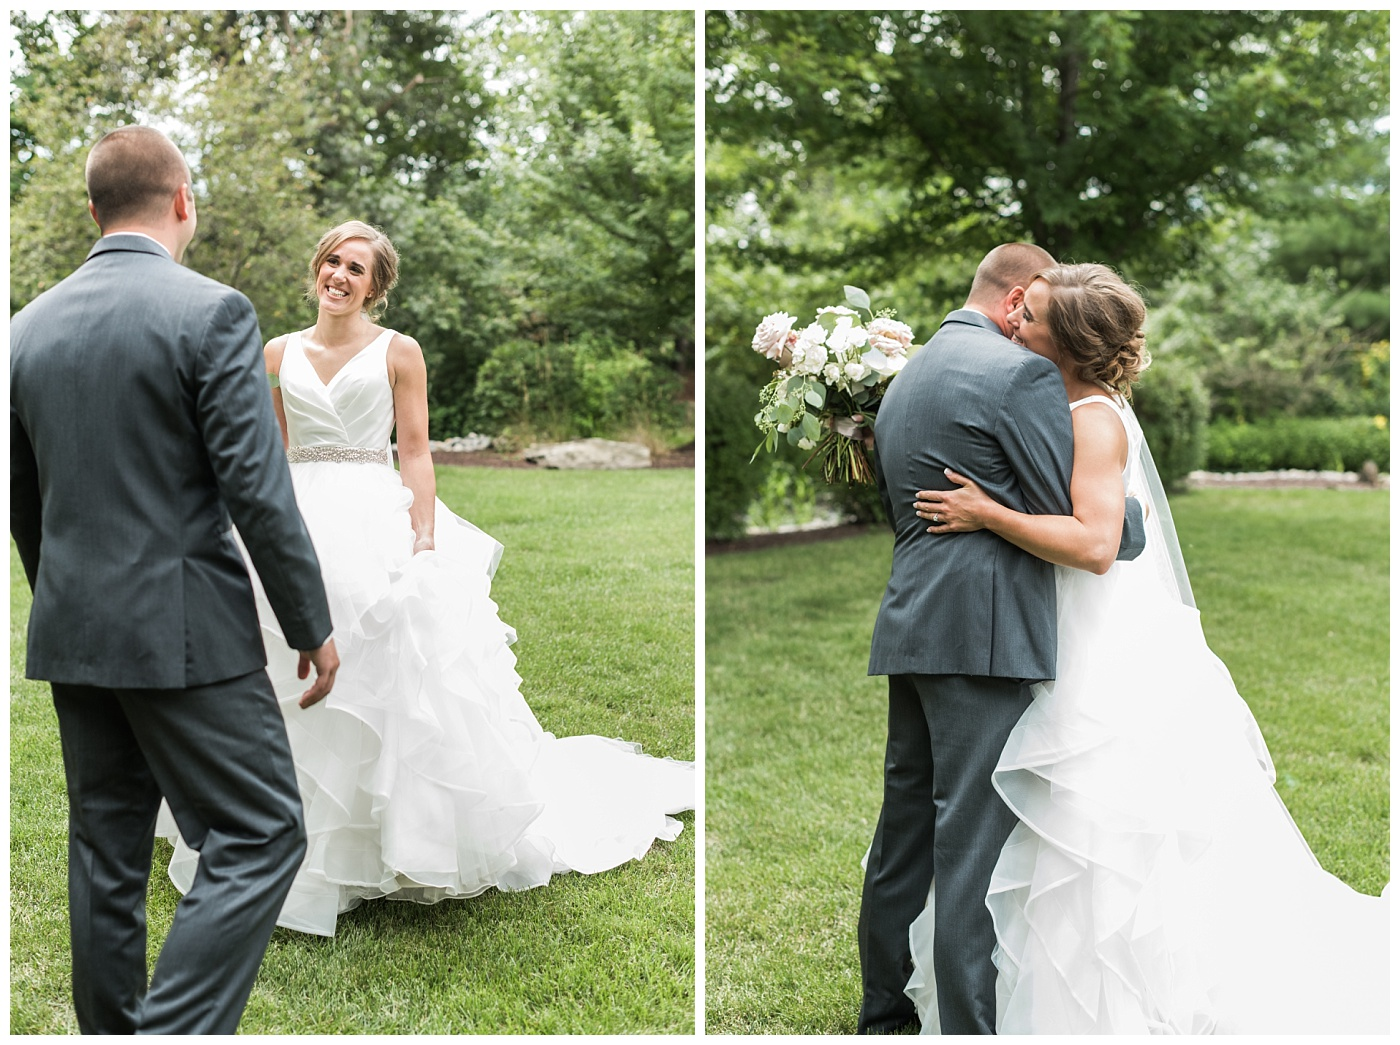 Stephanie Marie Photography Newman Catholic Center Ceremony Bella Sala Reception Tiffin Iowa City Wedding Photographer Chelsey Justin Meyers_0013-1.jpg